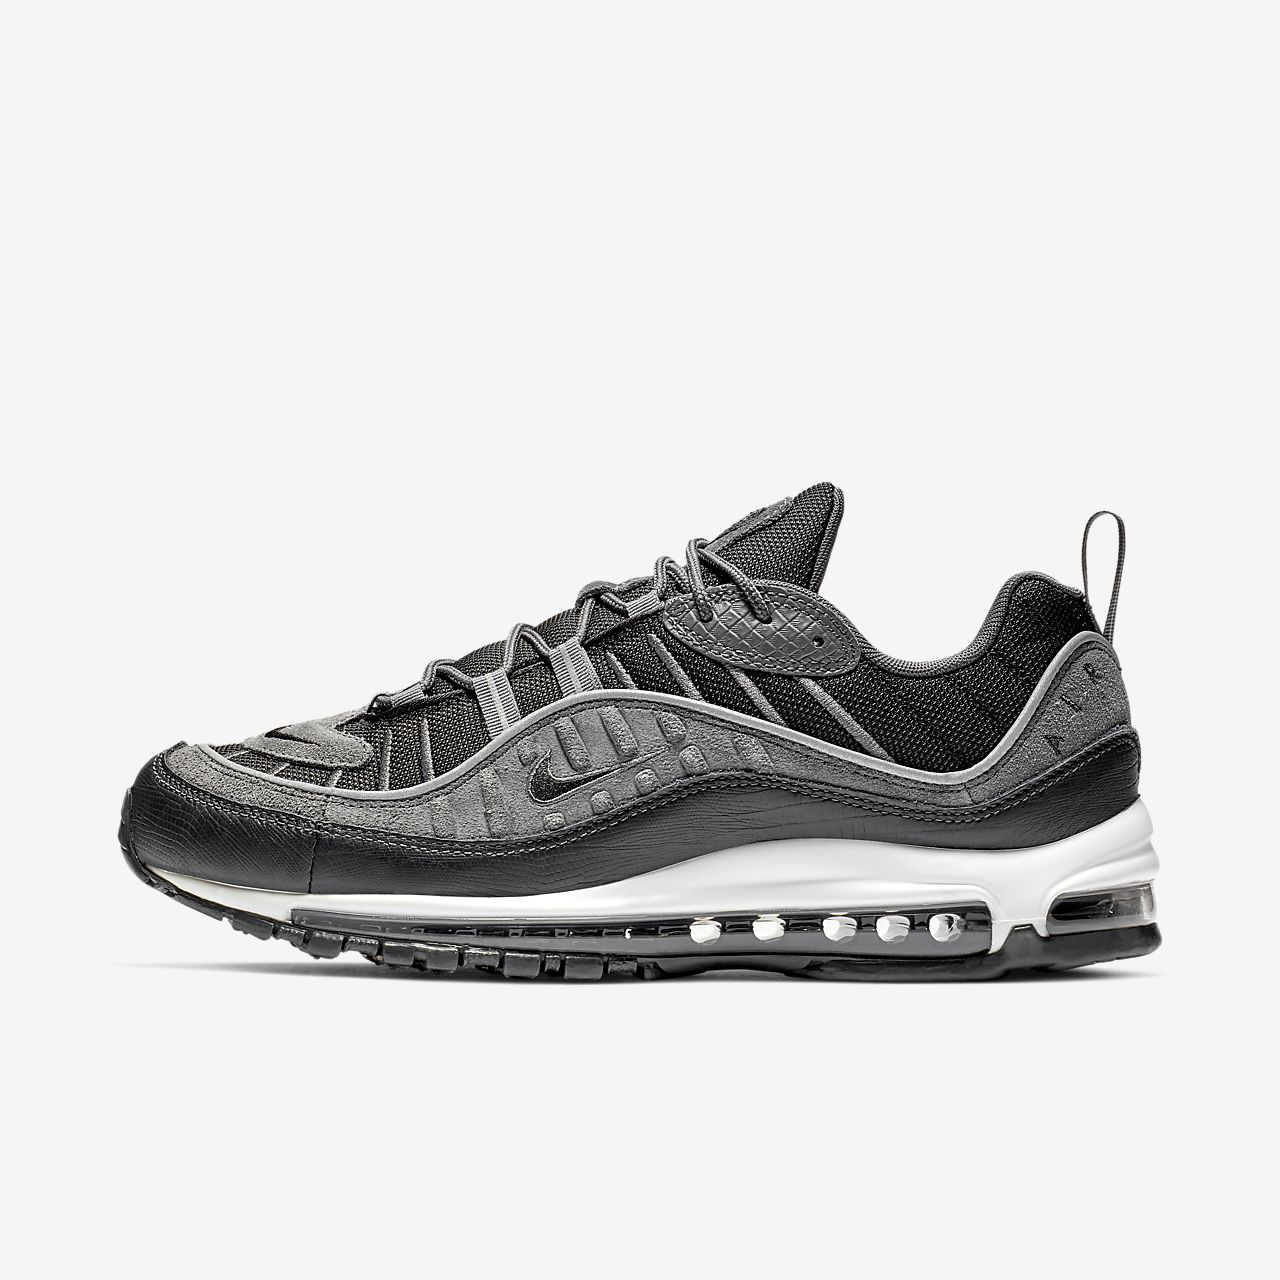 98 Nike Max Pour HommeFr Chaussure Air PZOkTluXwi